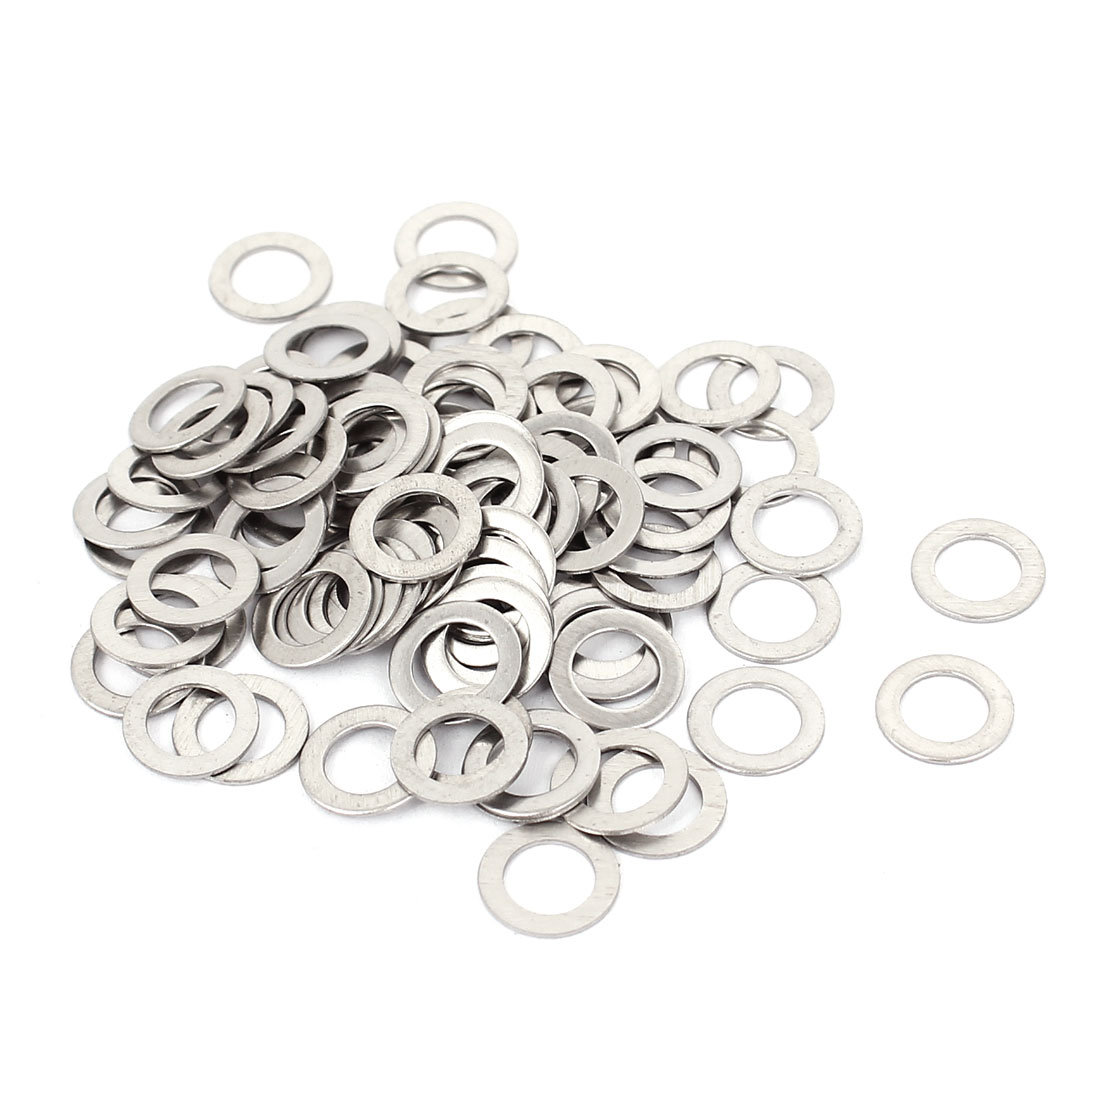 100Pcs M6x10mmx0.5mm Stainless Steel Metric Round Flat Washer for Bolt Screw